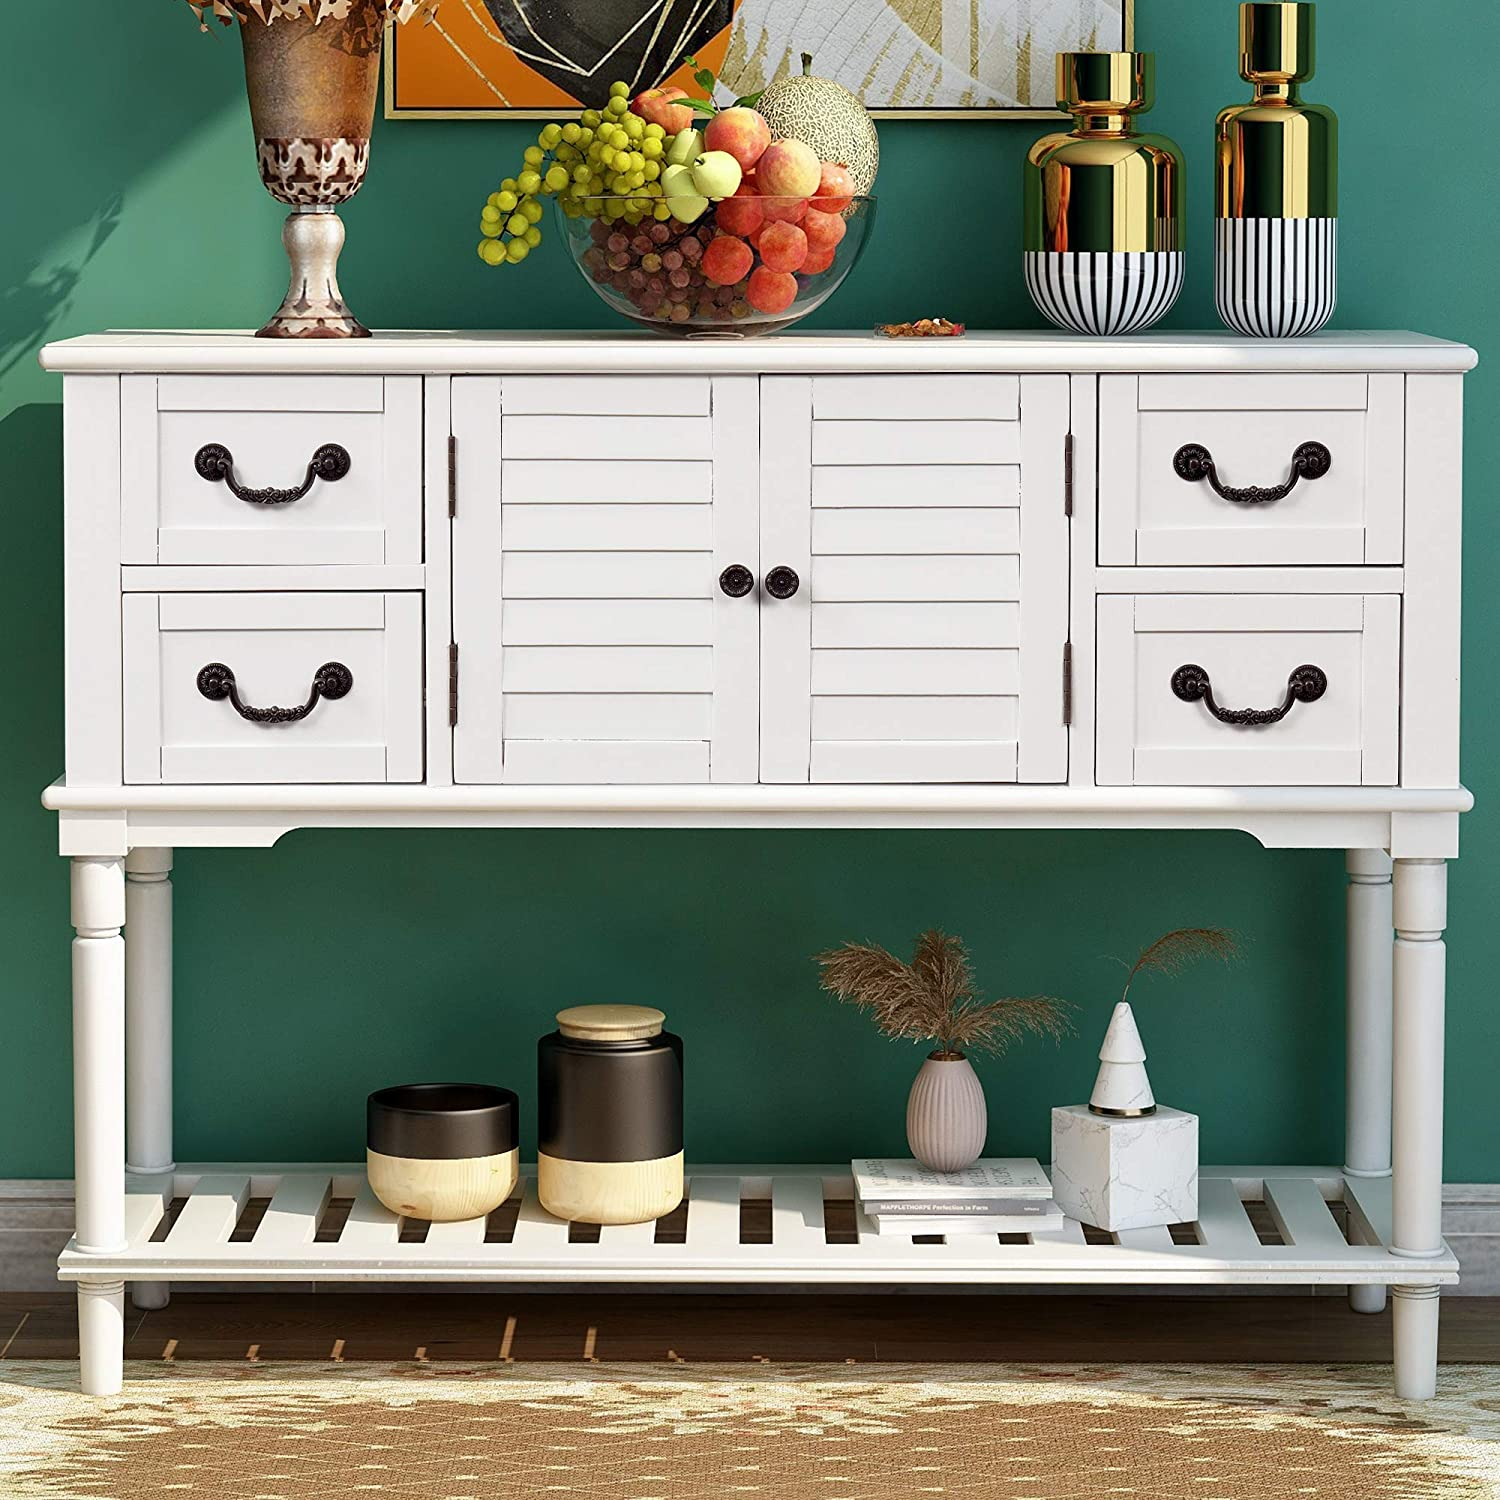 QSSLLC Console Table Sideboard Rustic Cabinet Entryway Sofa Table with 4 Storage Drawer and Shutter Doors - White